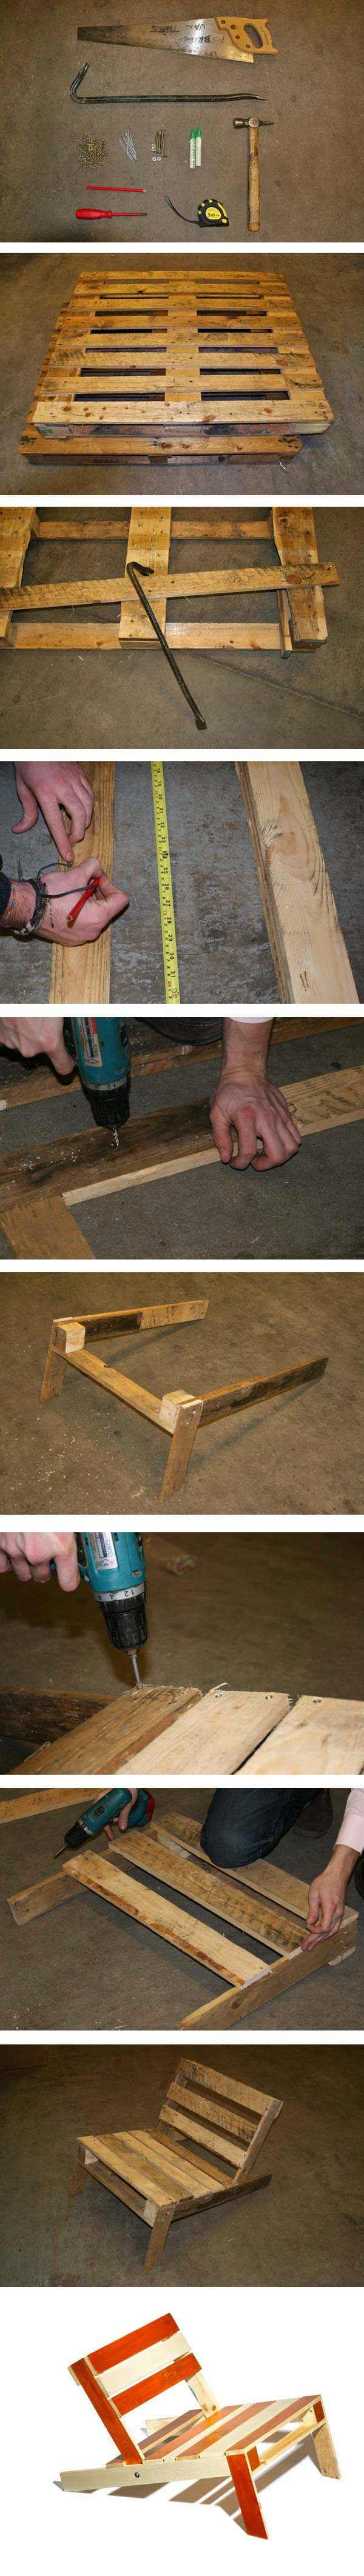 Pallet furniture project. I'm going to make this!!